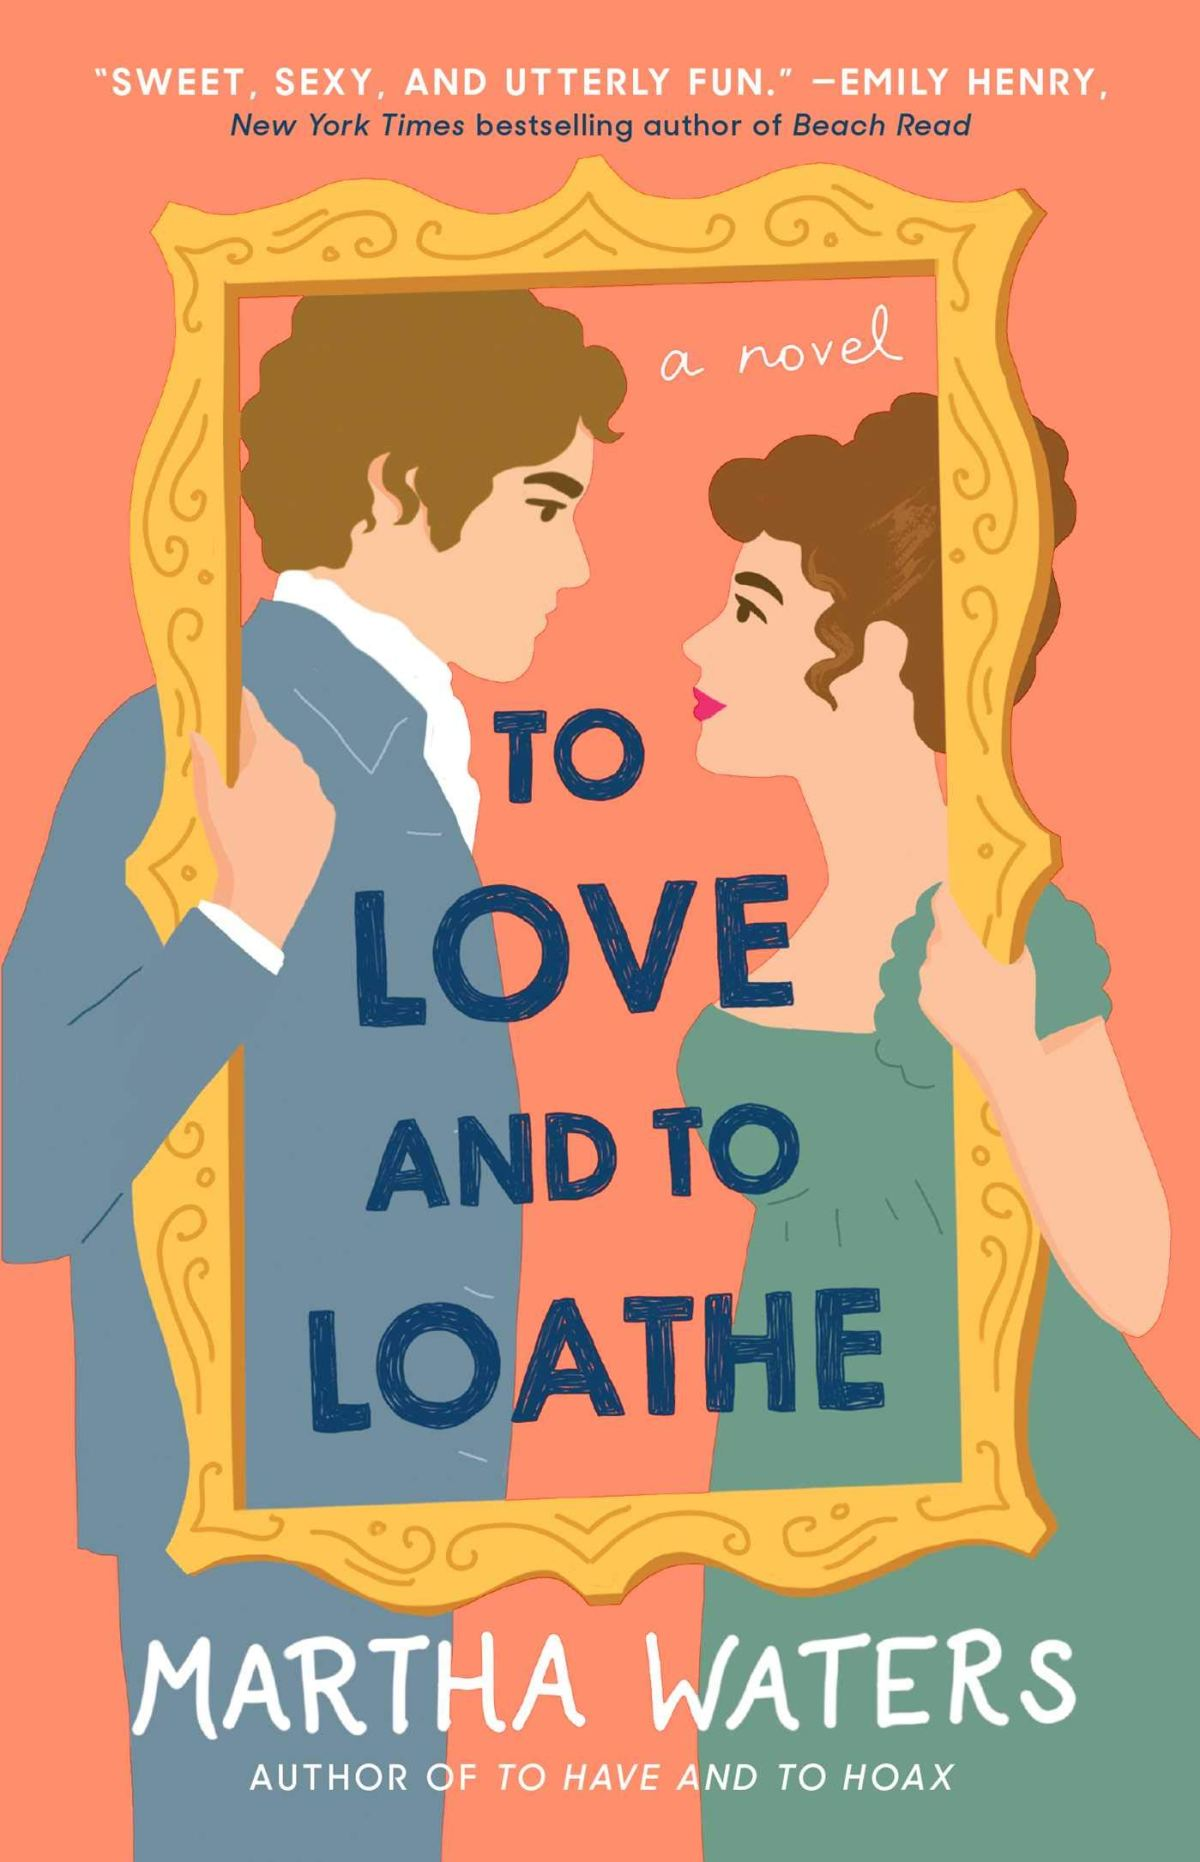 Martha Waters - To Love and to Loathe